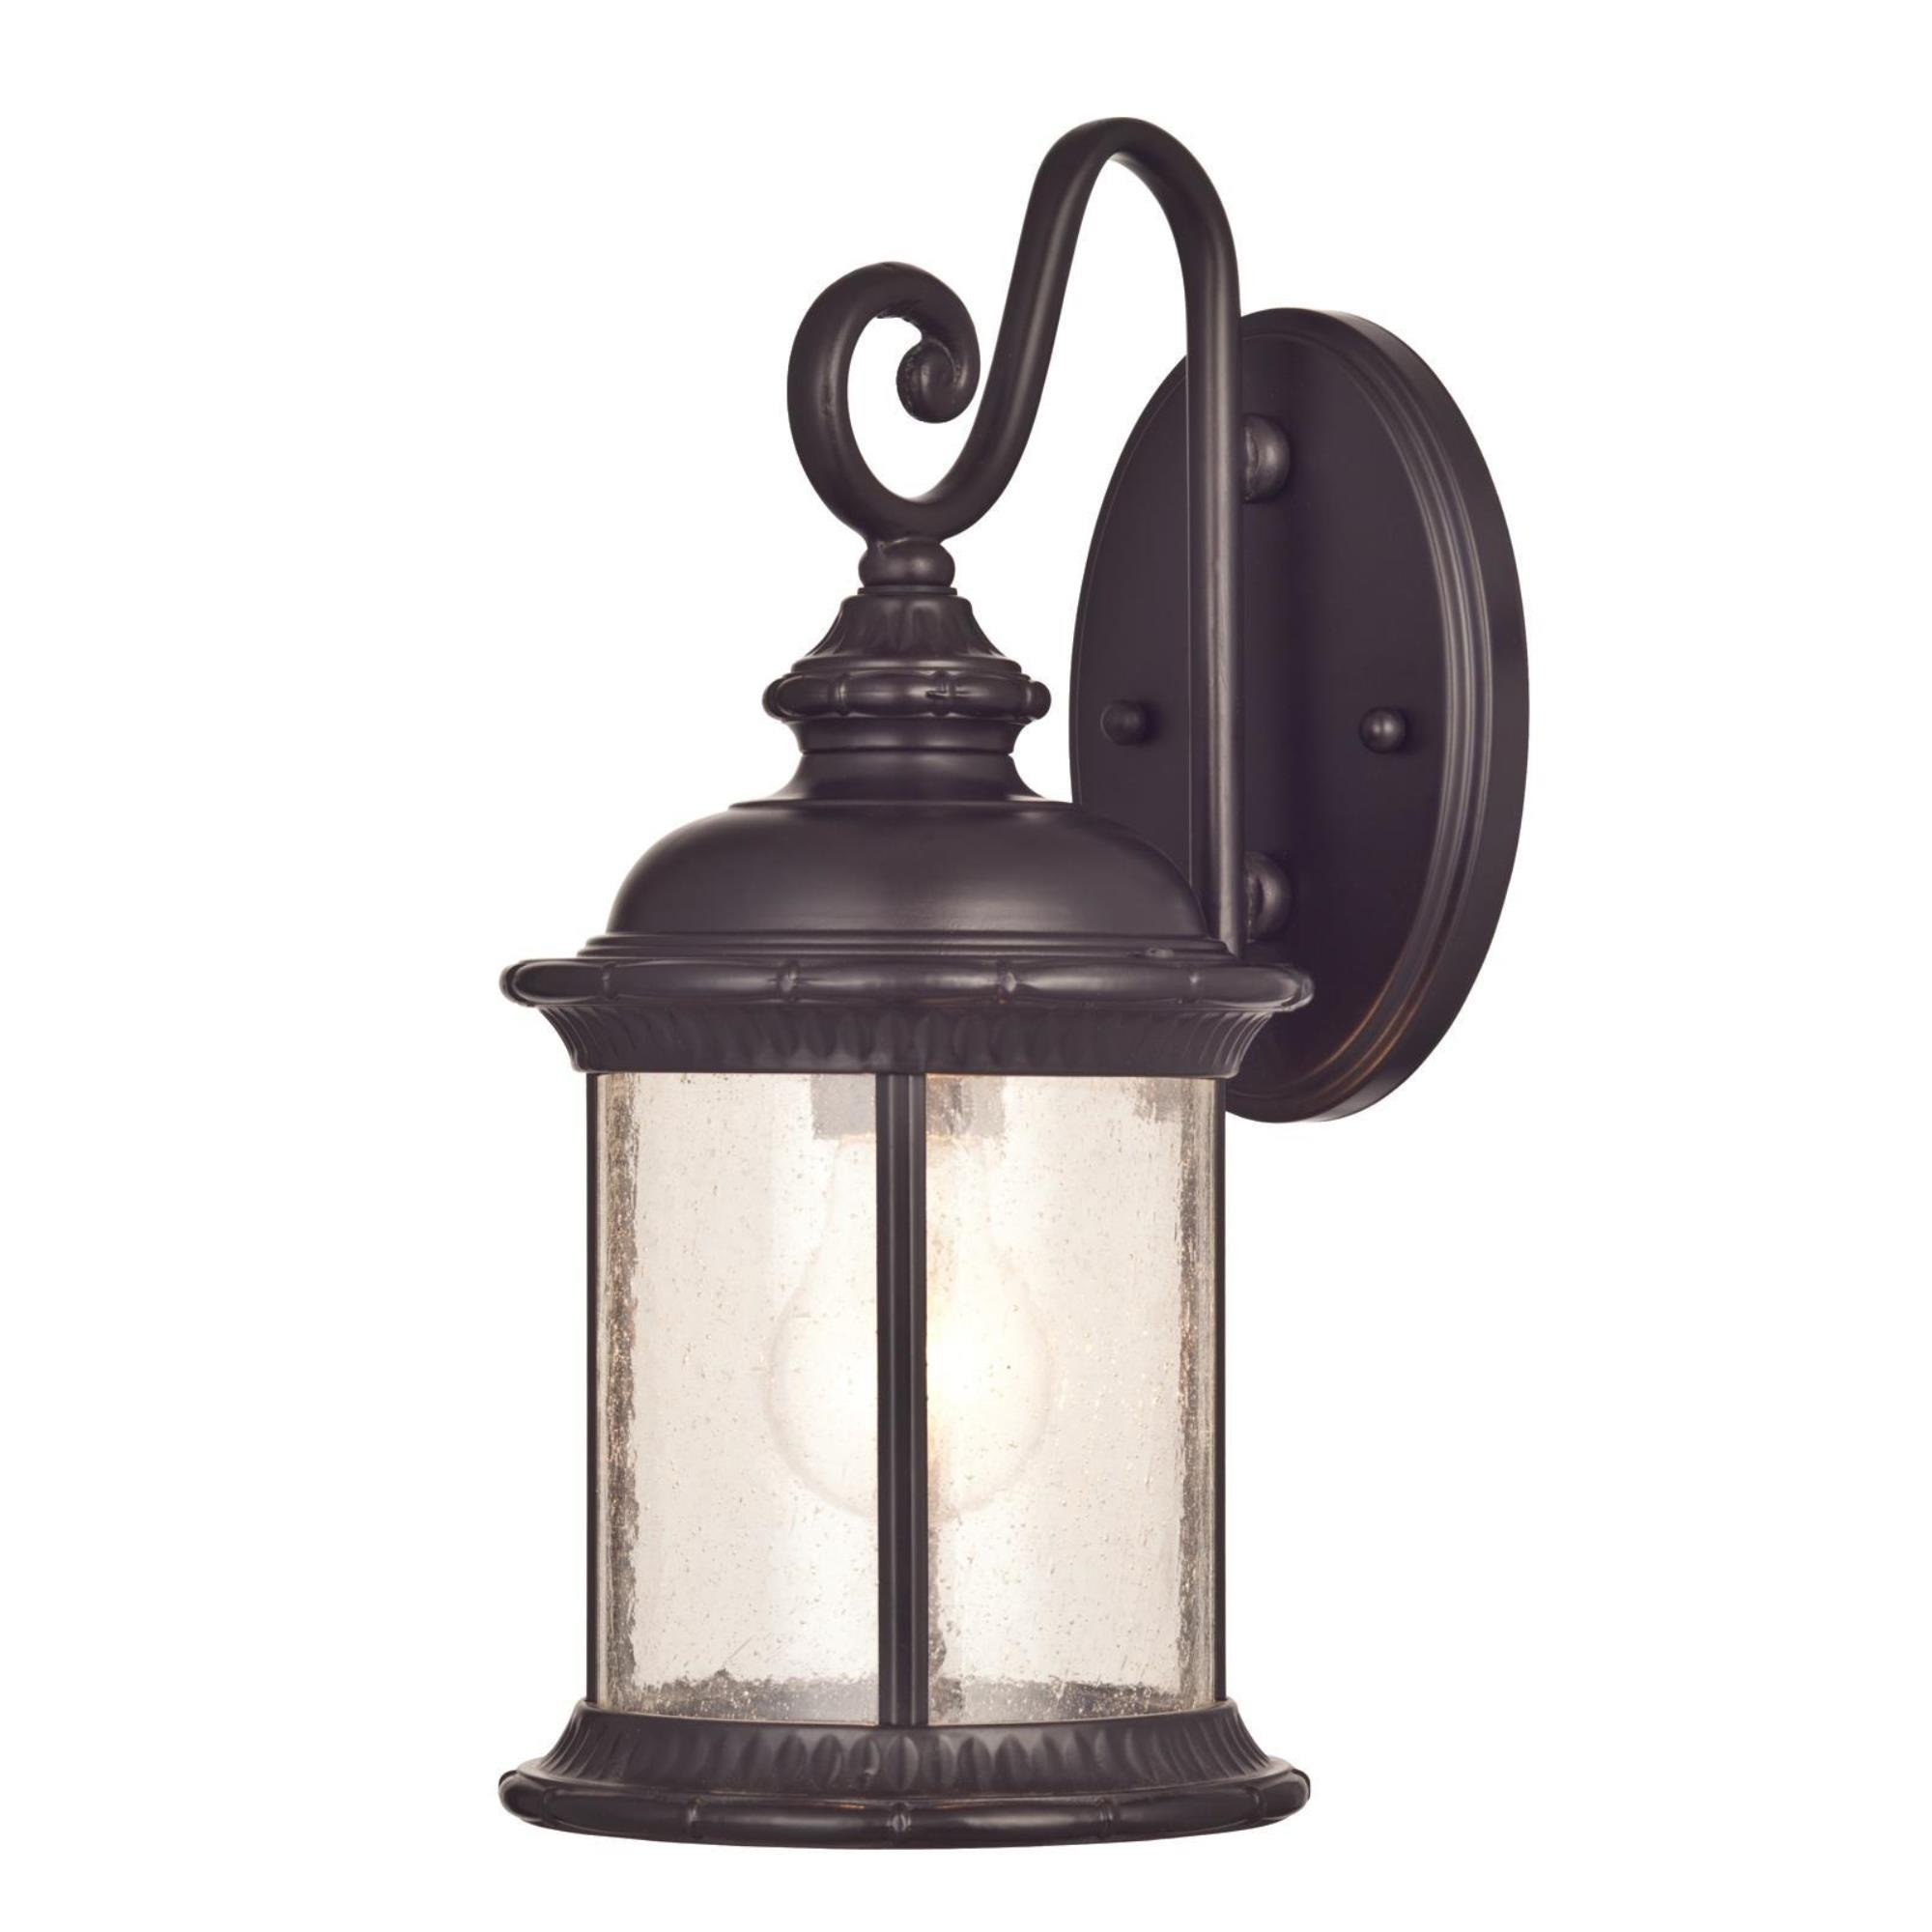 Westinghouse Lighting 6230600 New Haven One-Light Exterior Wall Lantern on Steel with Clear Seeded Glass, Oil Rubbed Bronze Finish by Westinghouse Lighting